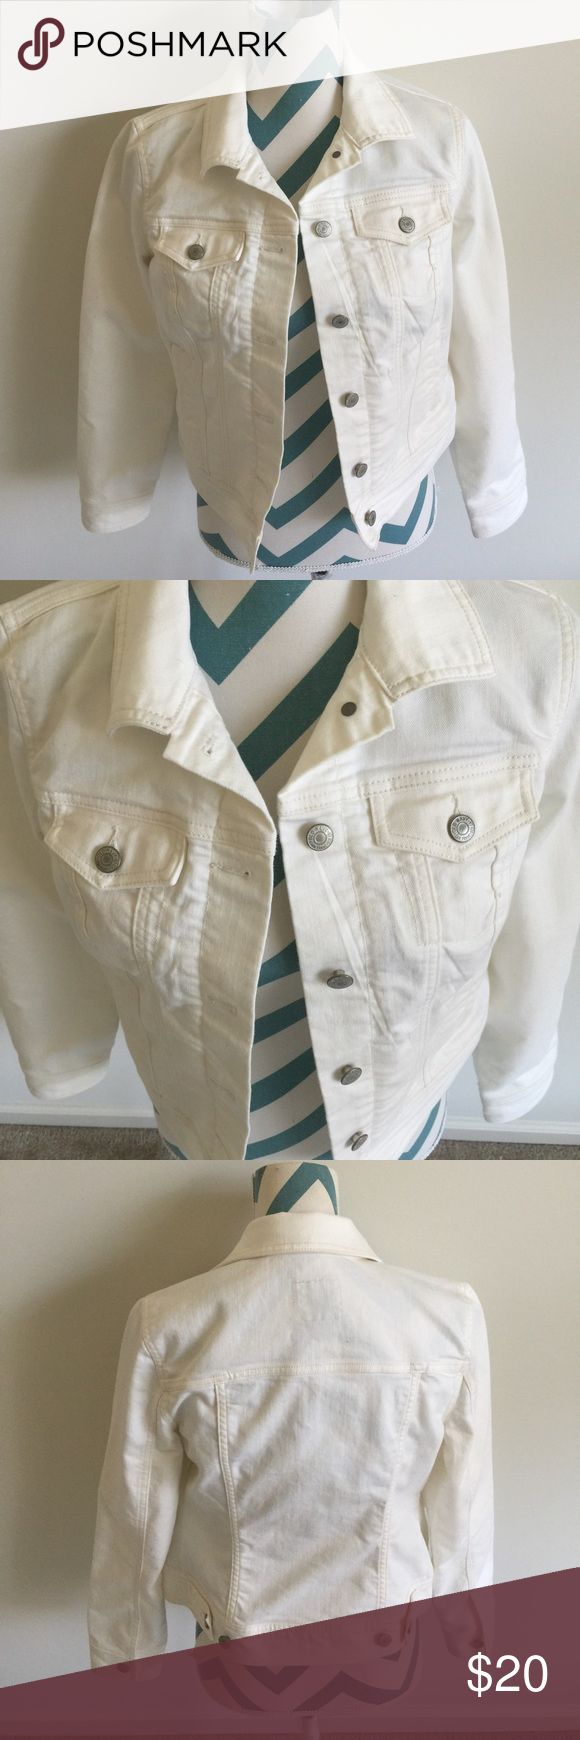 Old Navy Jacket Like new cream/off white colored denim/jean jacket. Silver button down. Material is super stretchy. No flaws! Old Navy Jackets & Coats